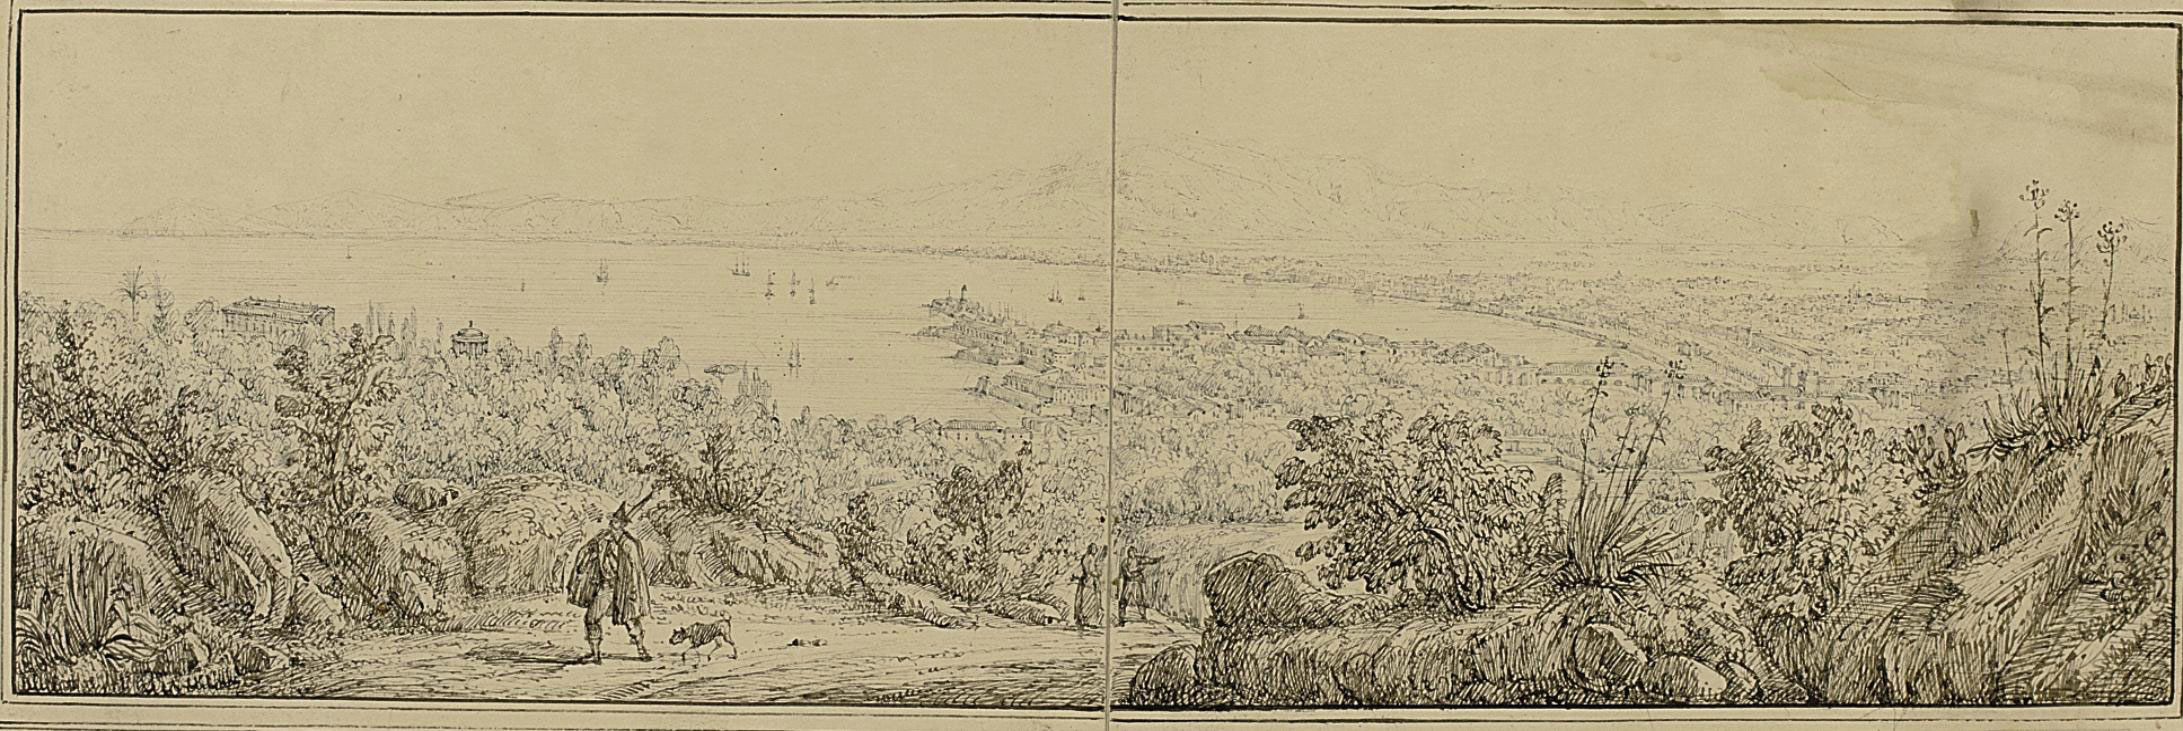 A panorama of the bay at Palermo